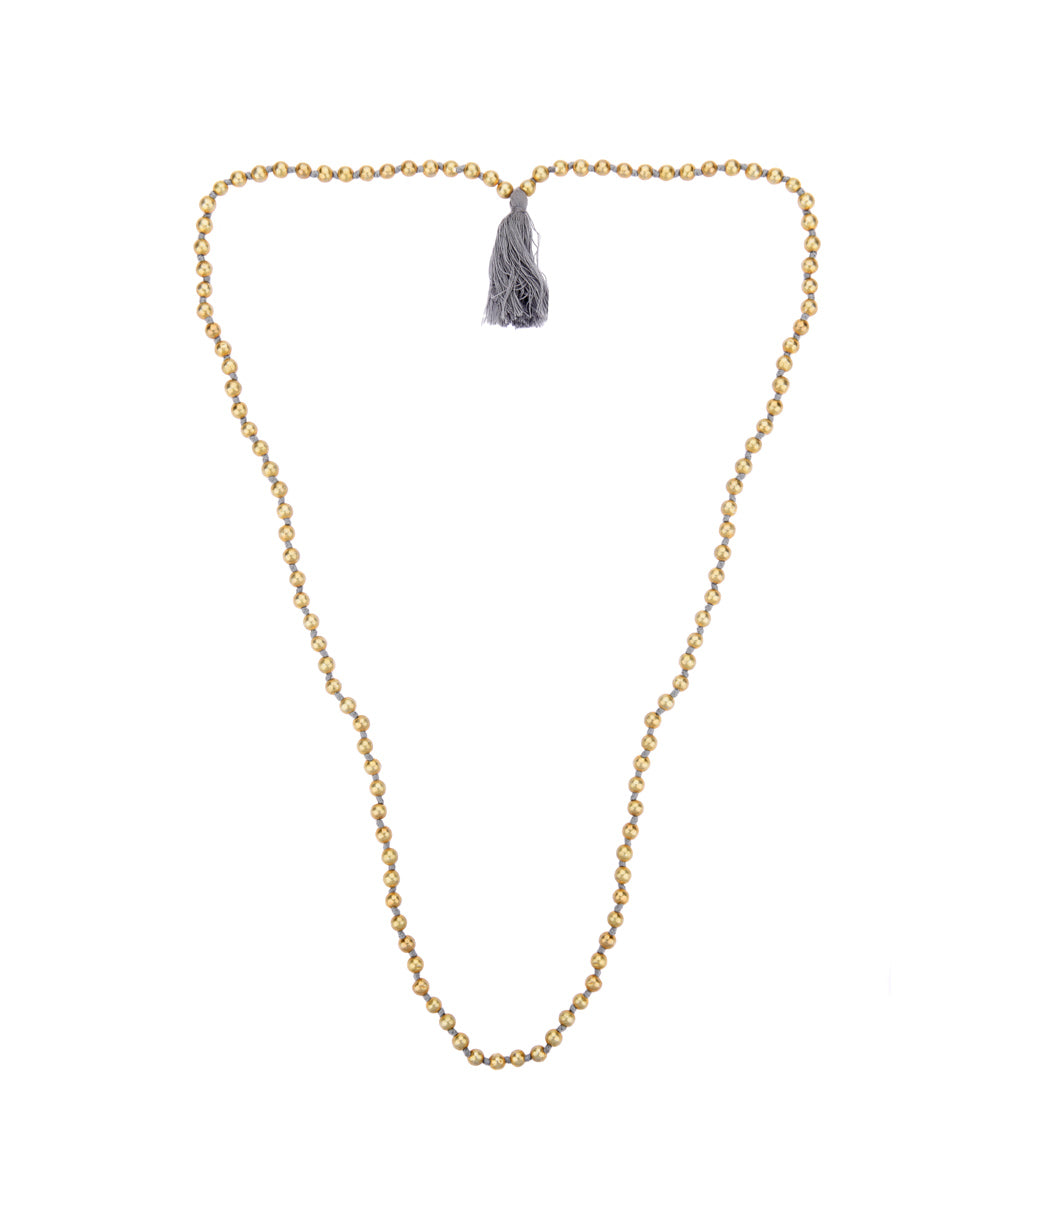 Ethereal Gold Necklace with Grey thread